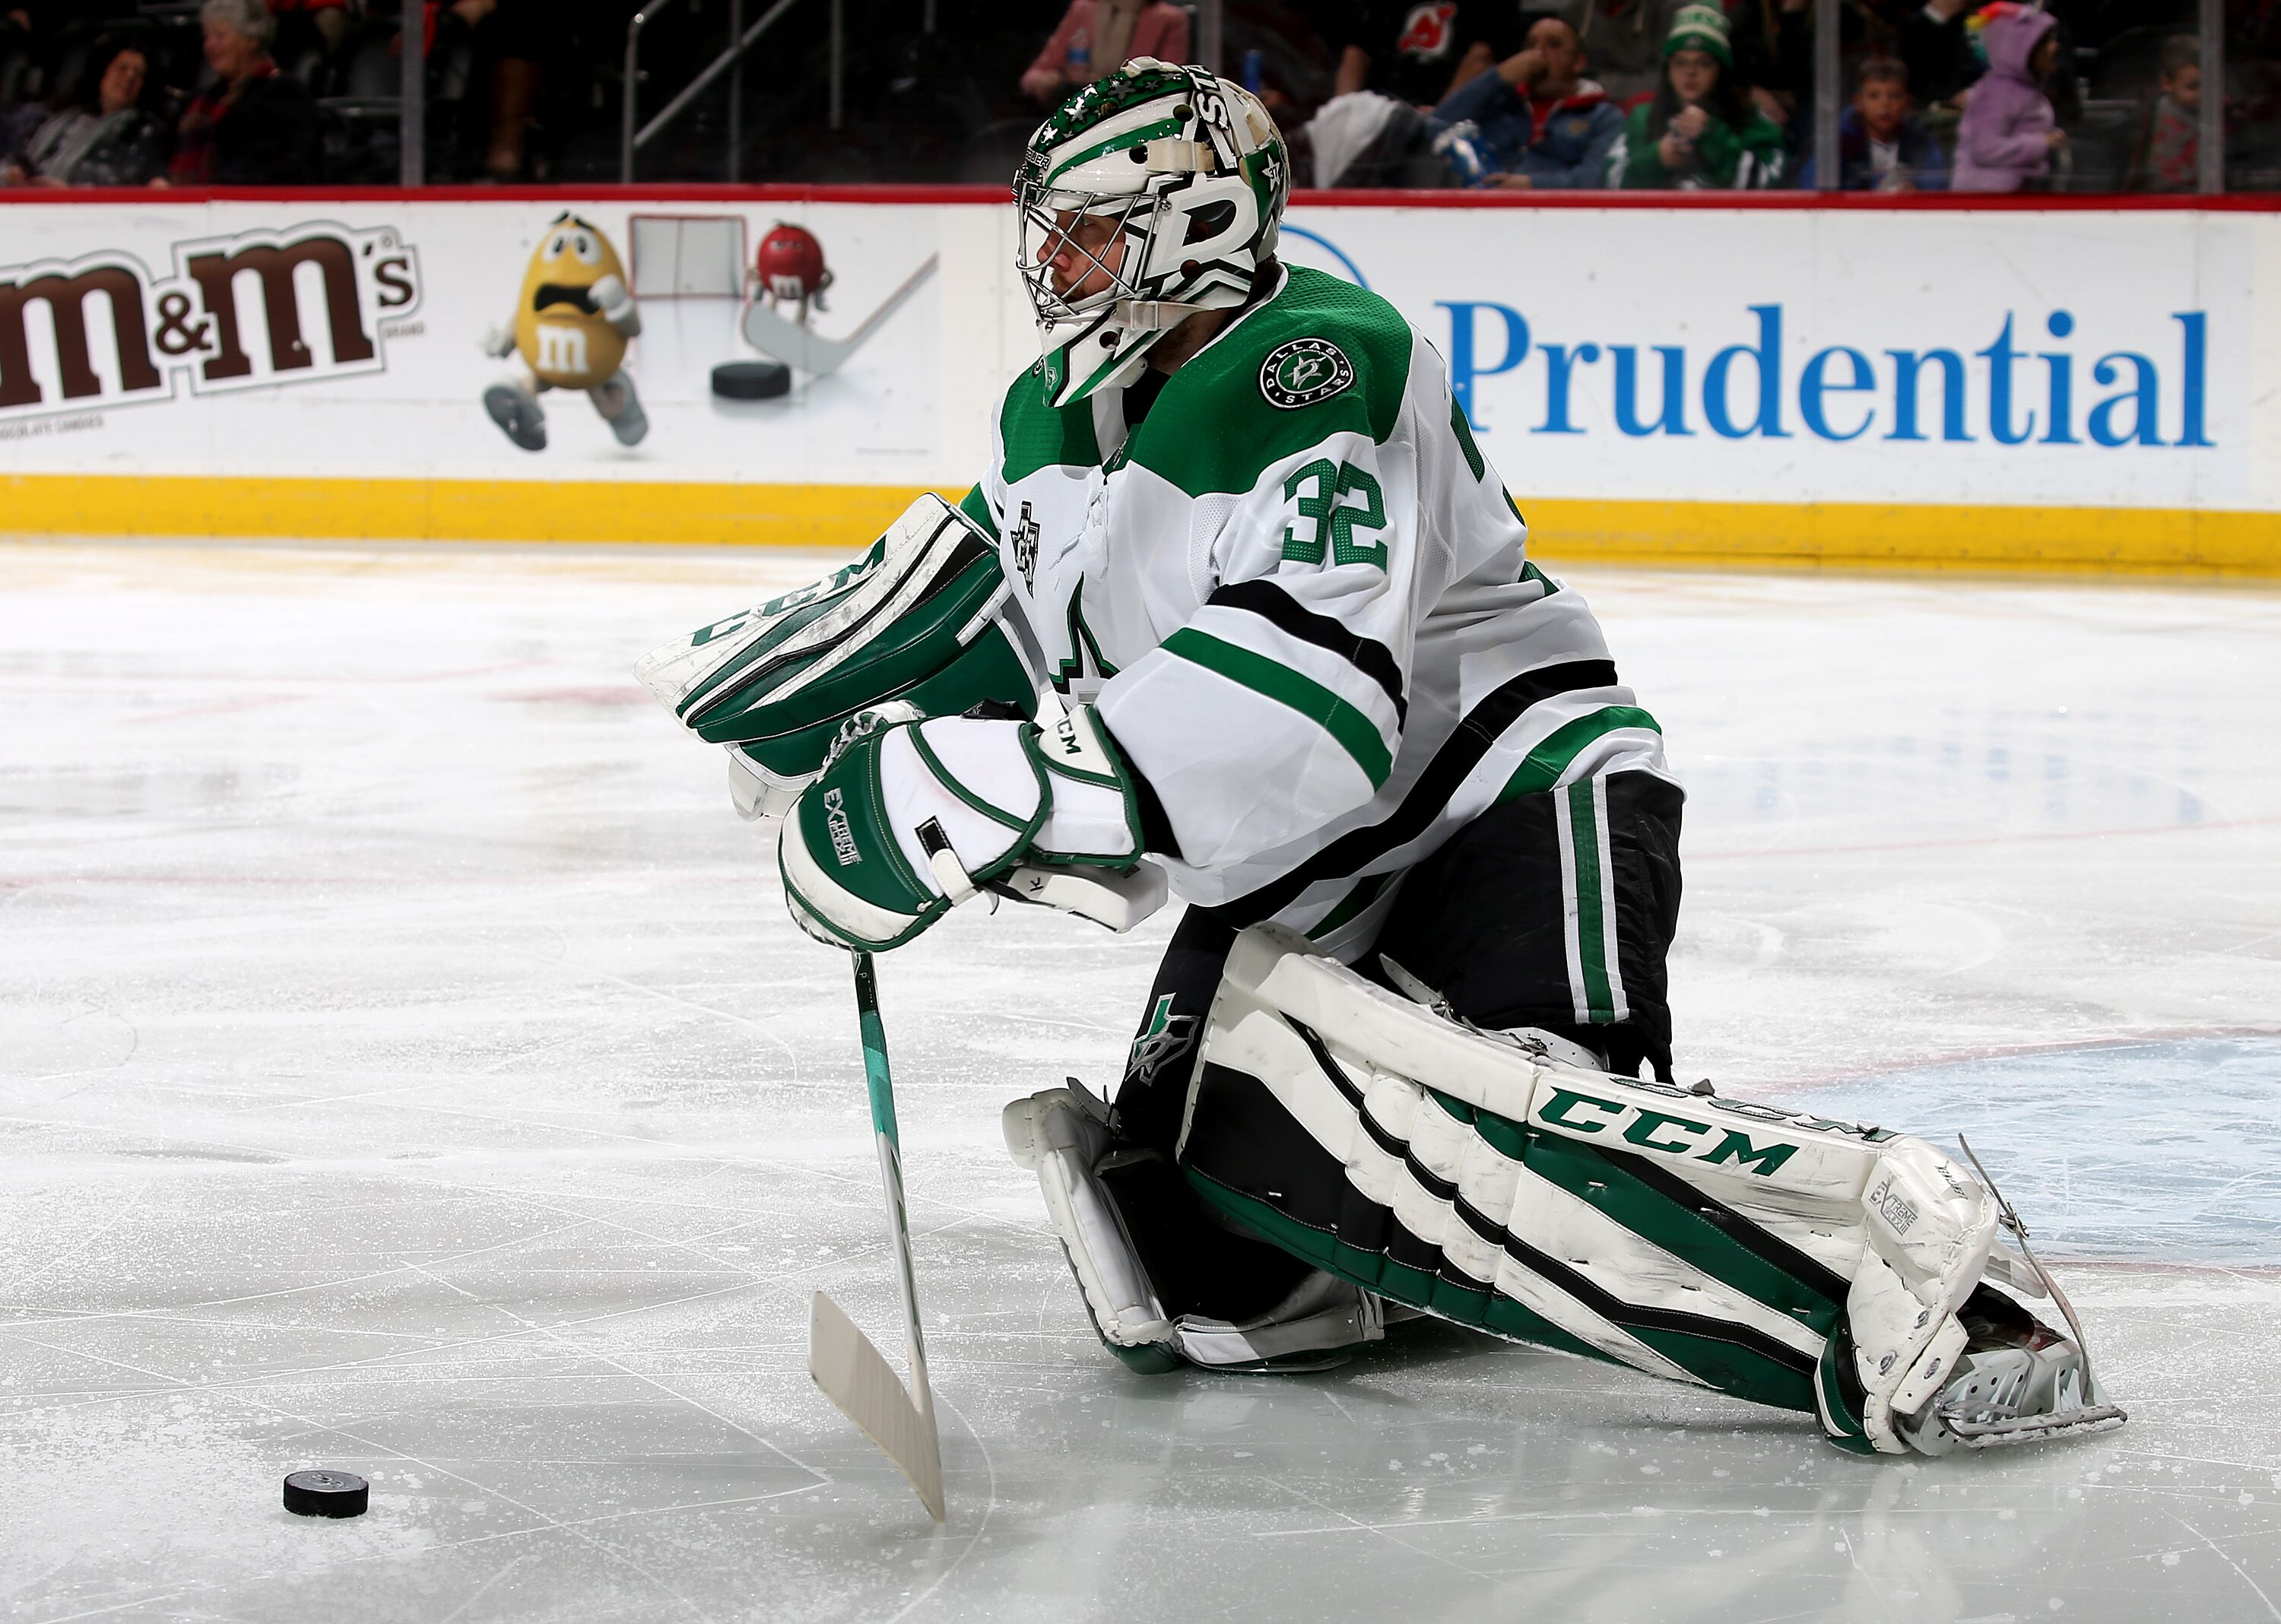 894762774-dallas-stars-v-new-jersey-devils.jpg